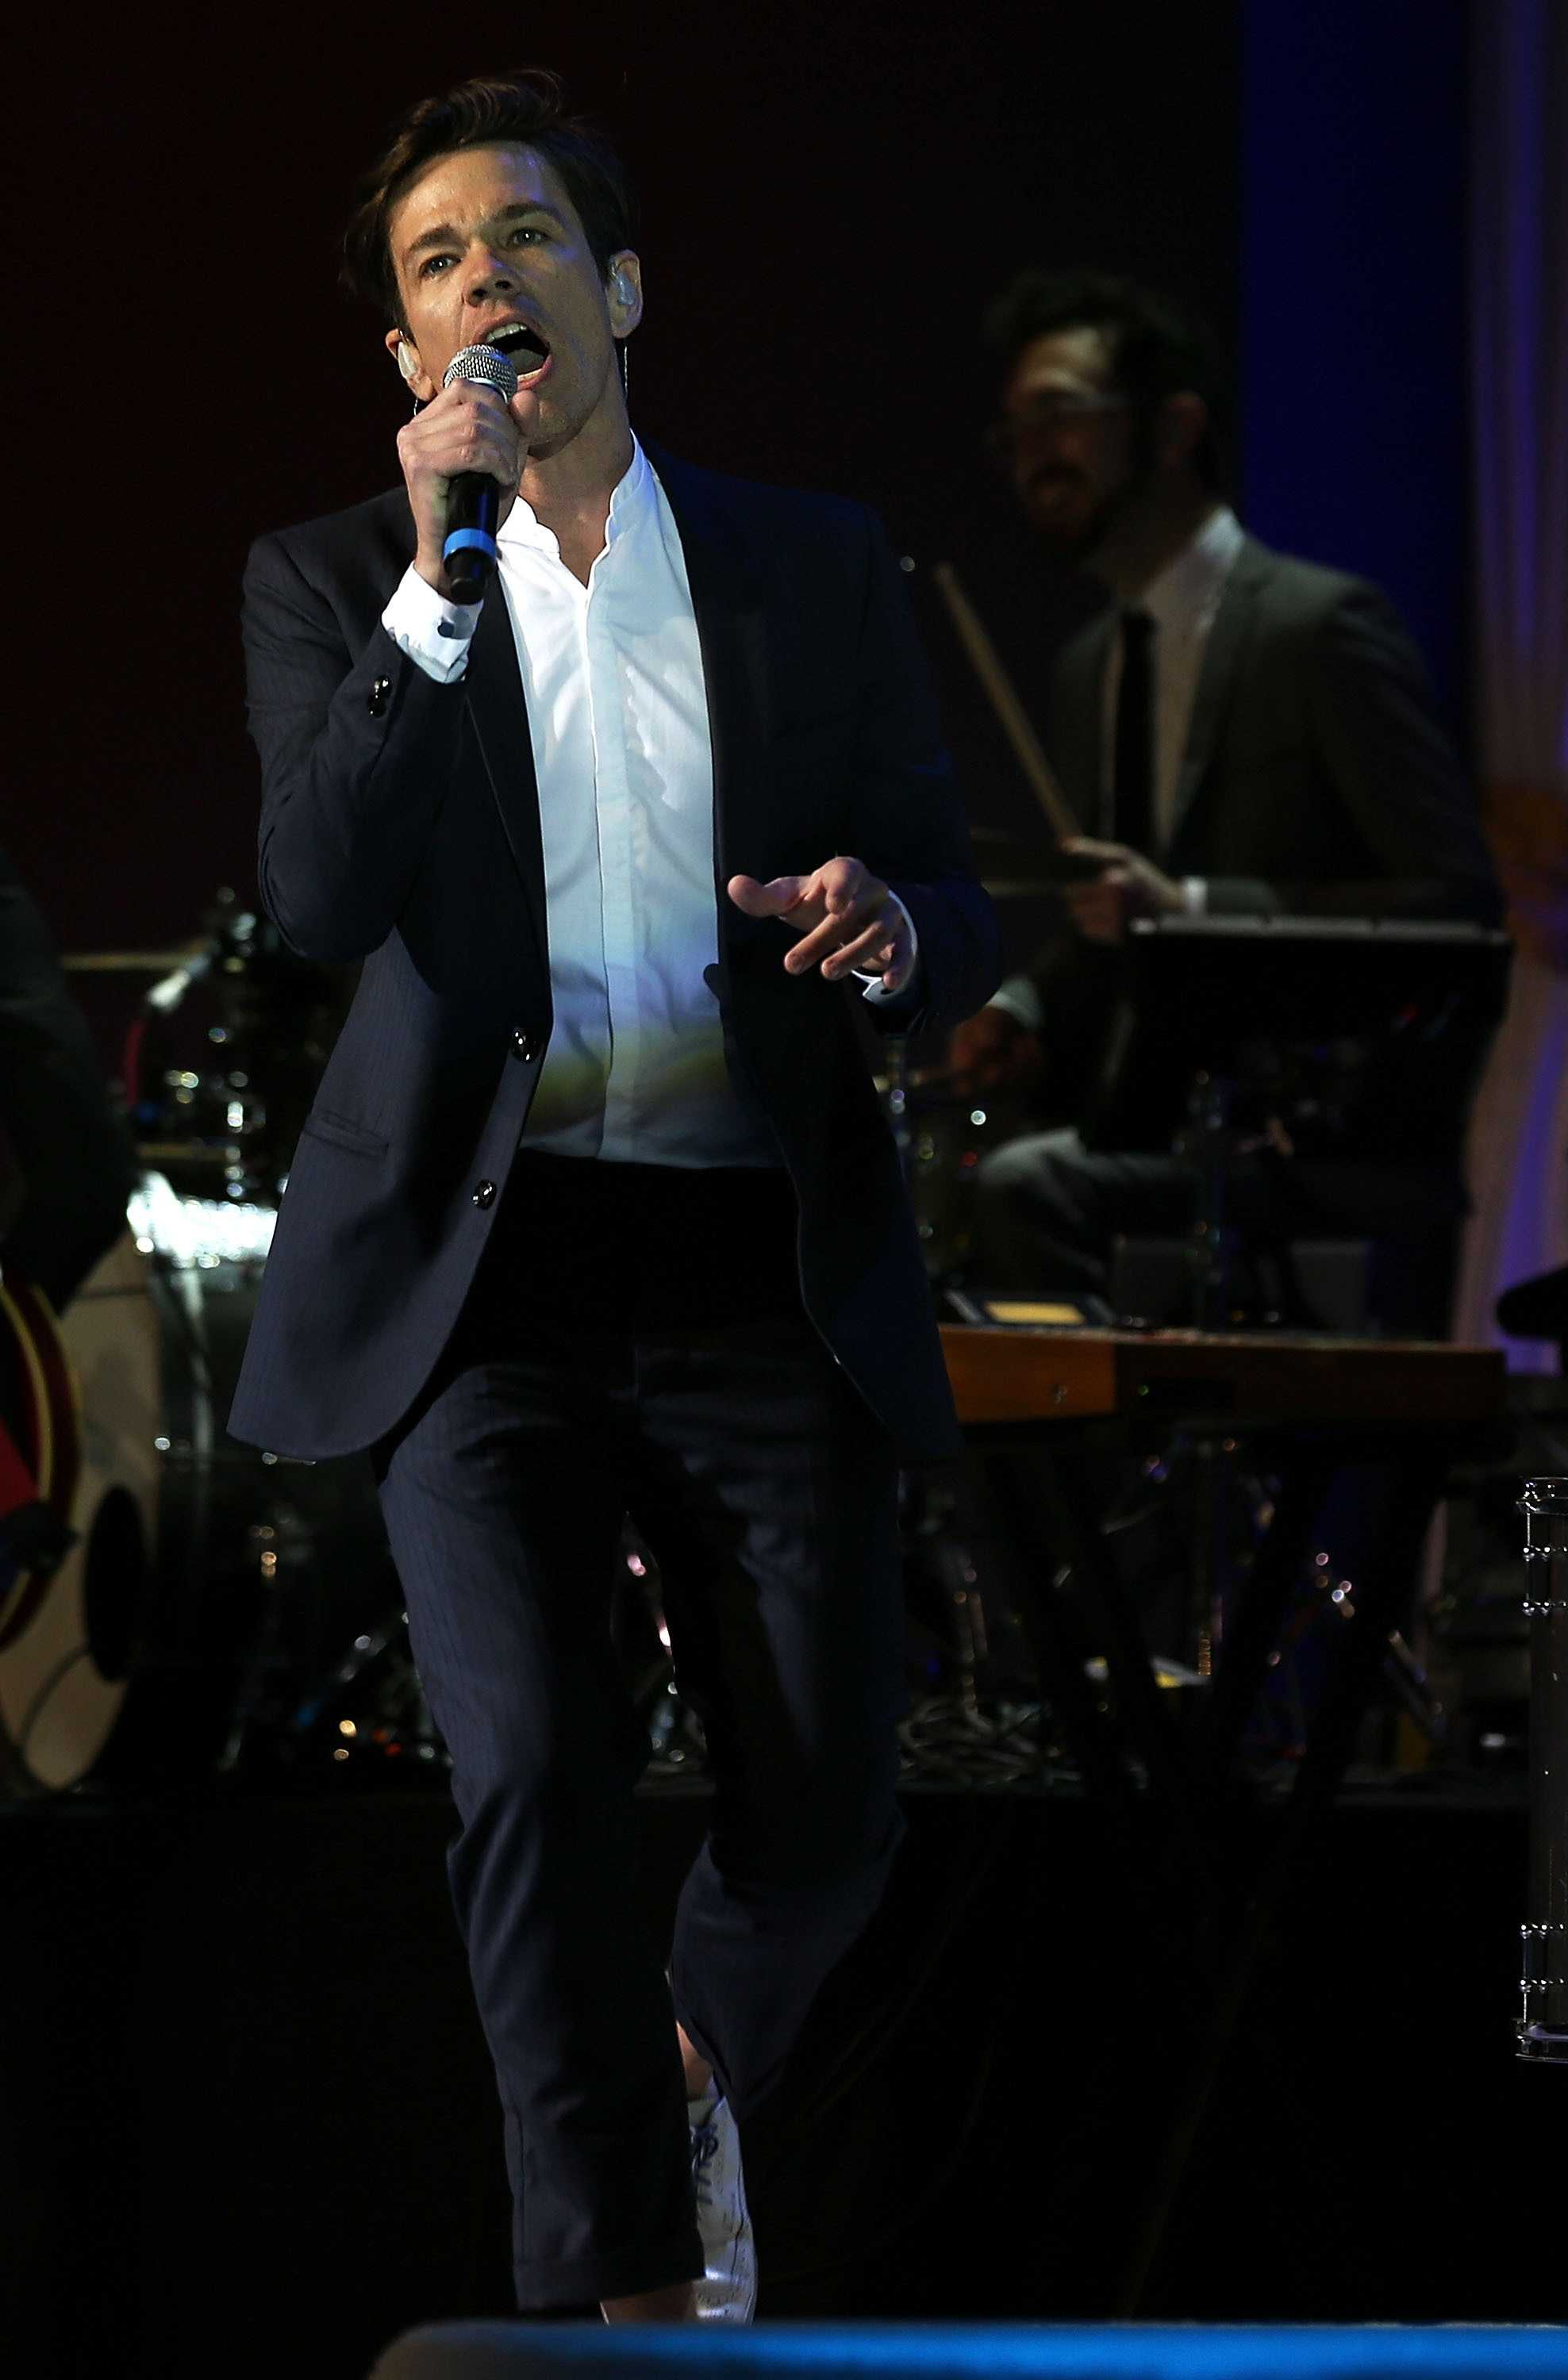 Nate Ruess of the band Fun performs during the Inaugural Ball on Monday, January 21, 2013 in Washington, D.C.